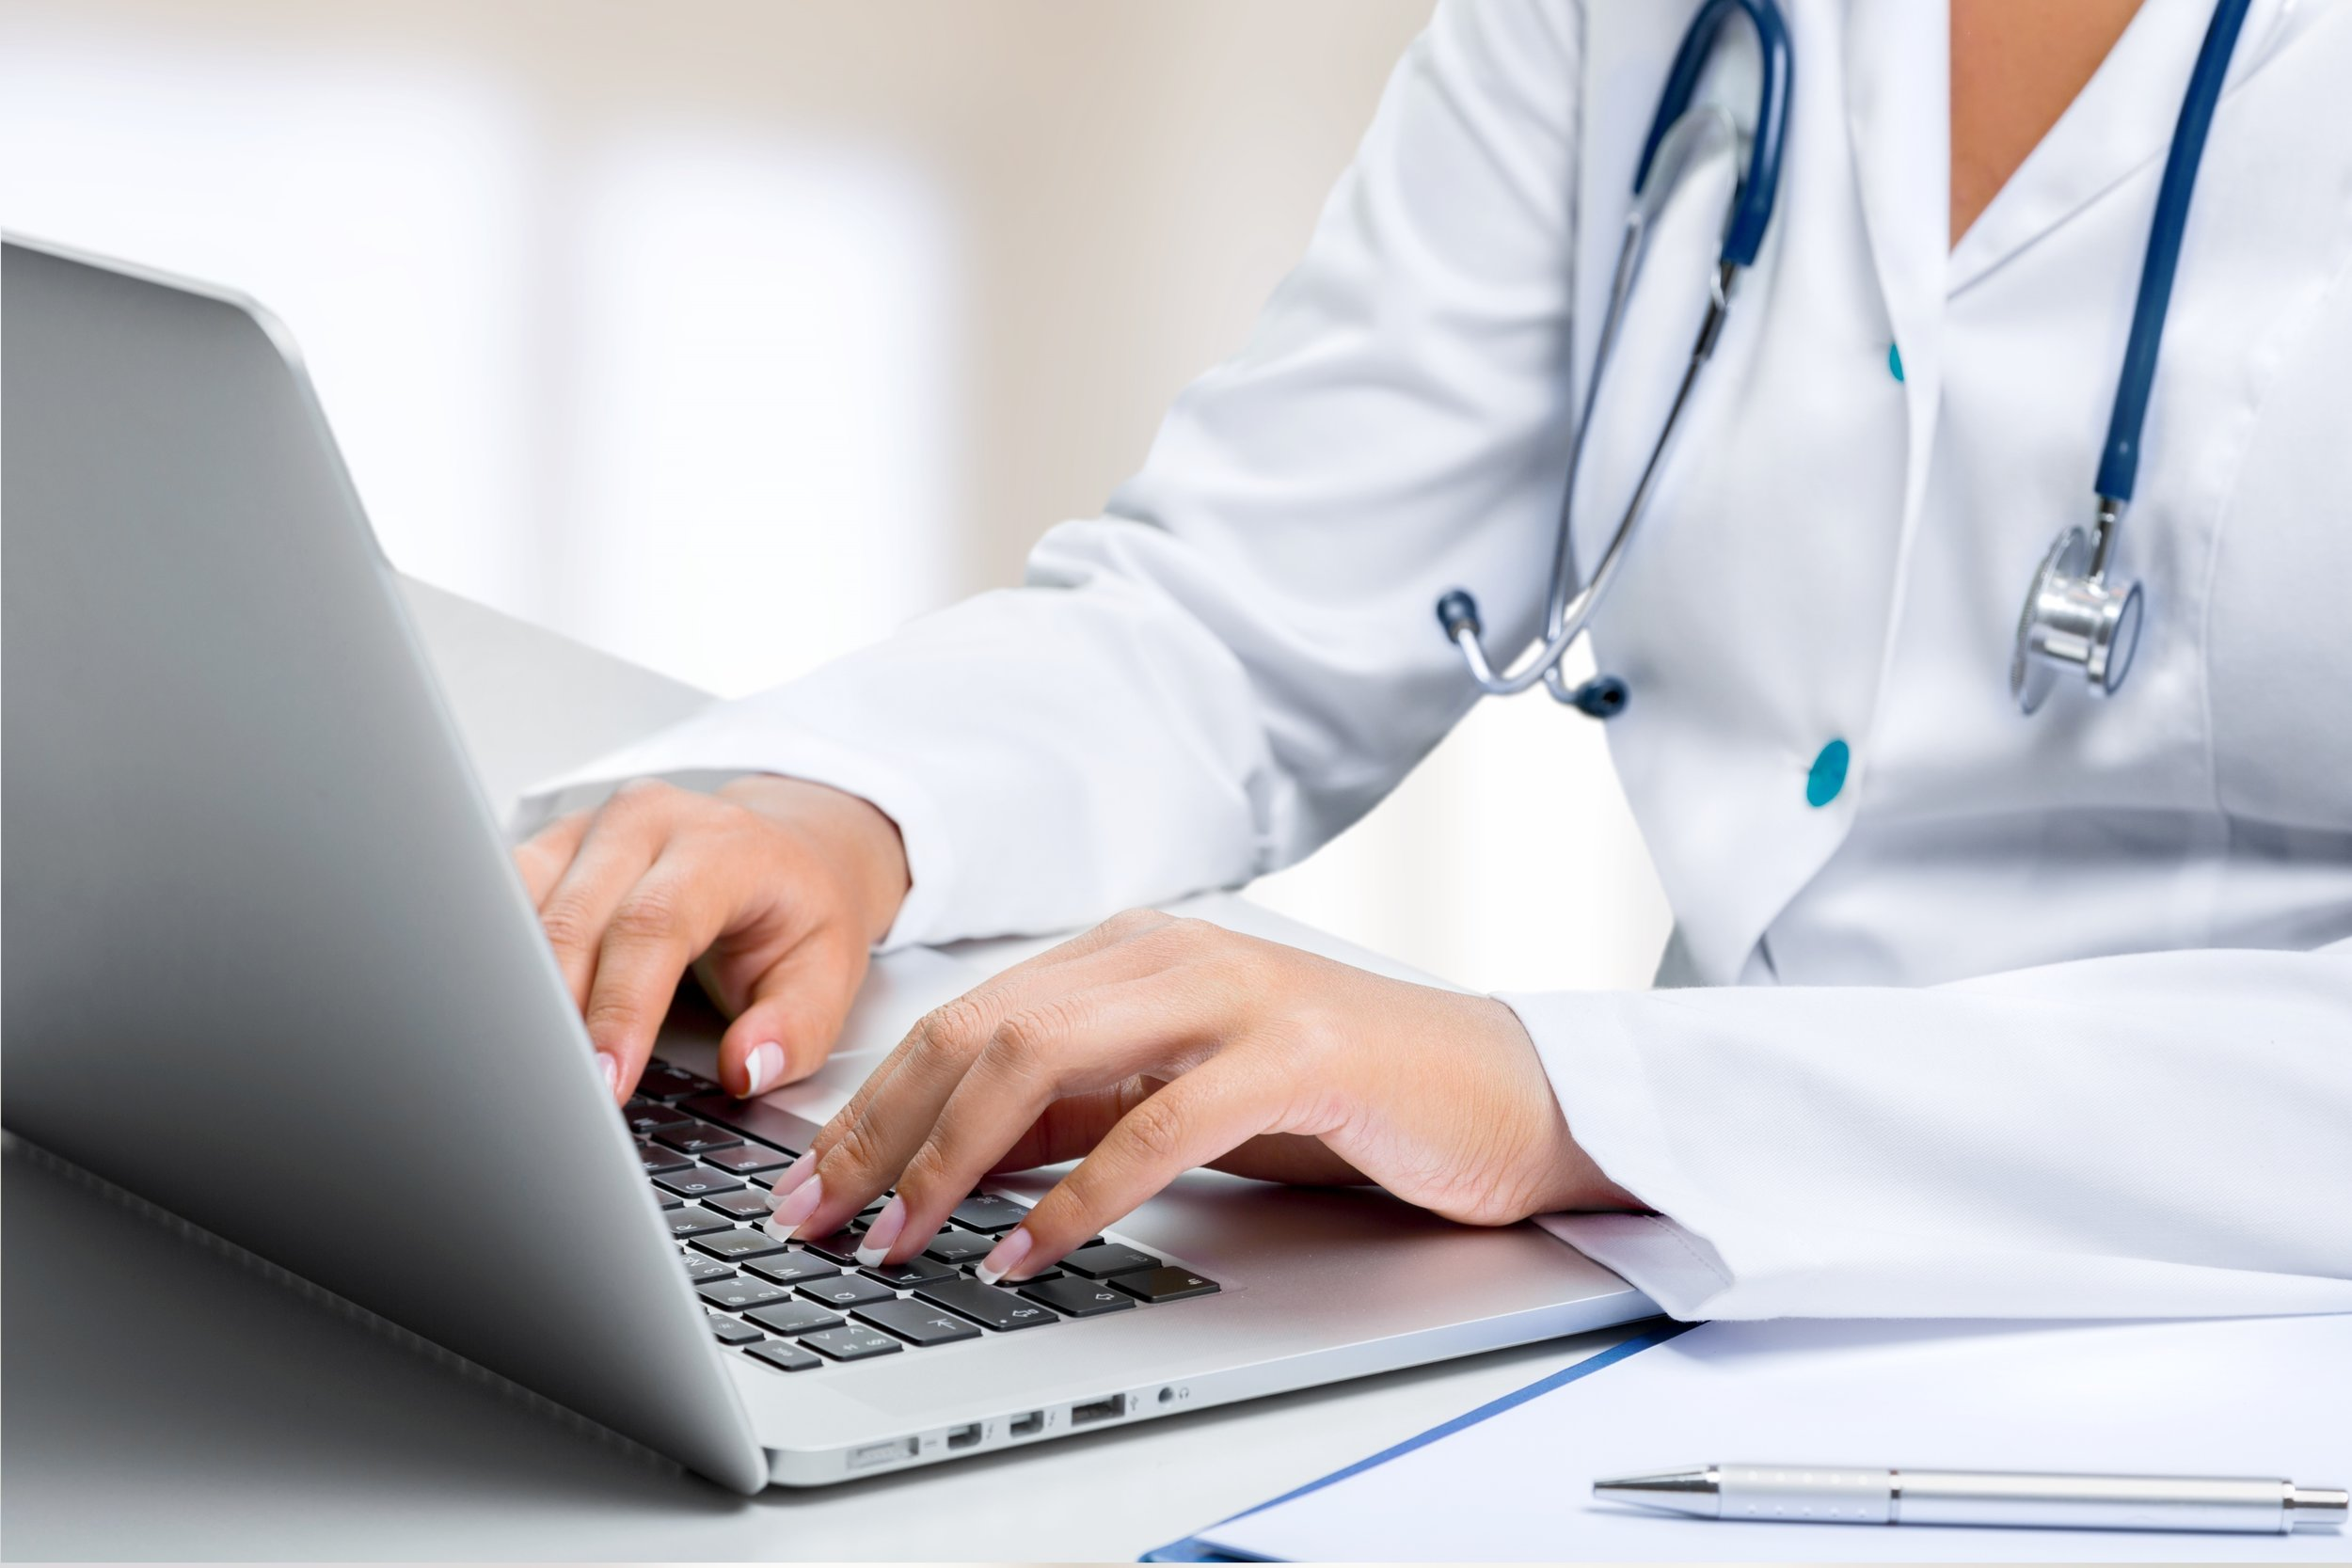 How Asset Tracking Can Save Time and Money for Hospitals